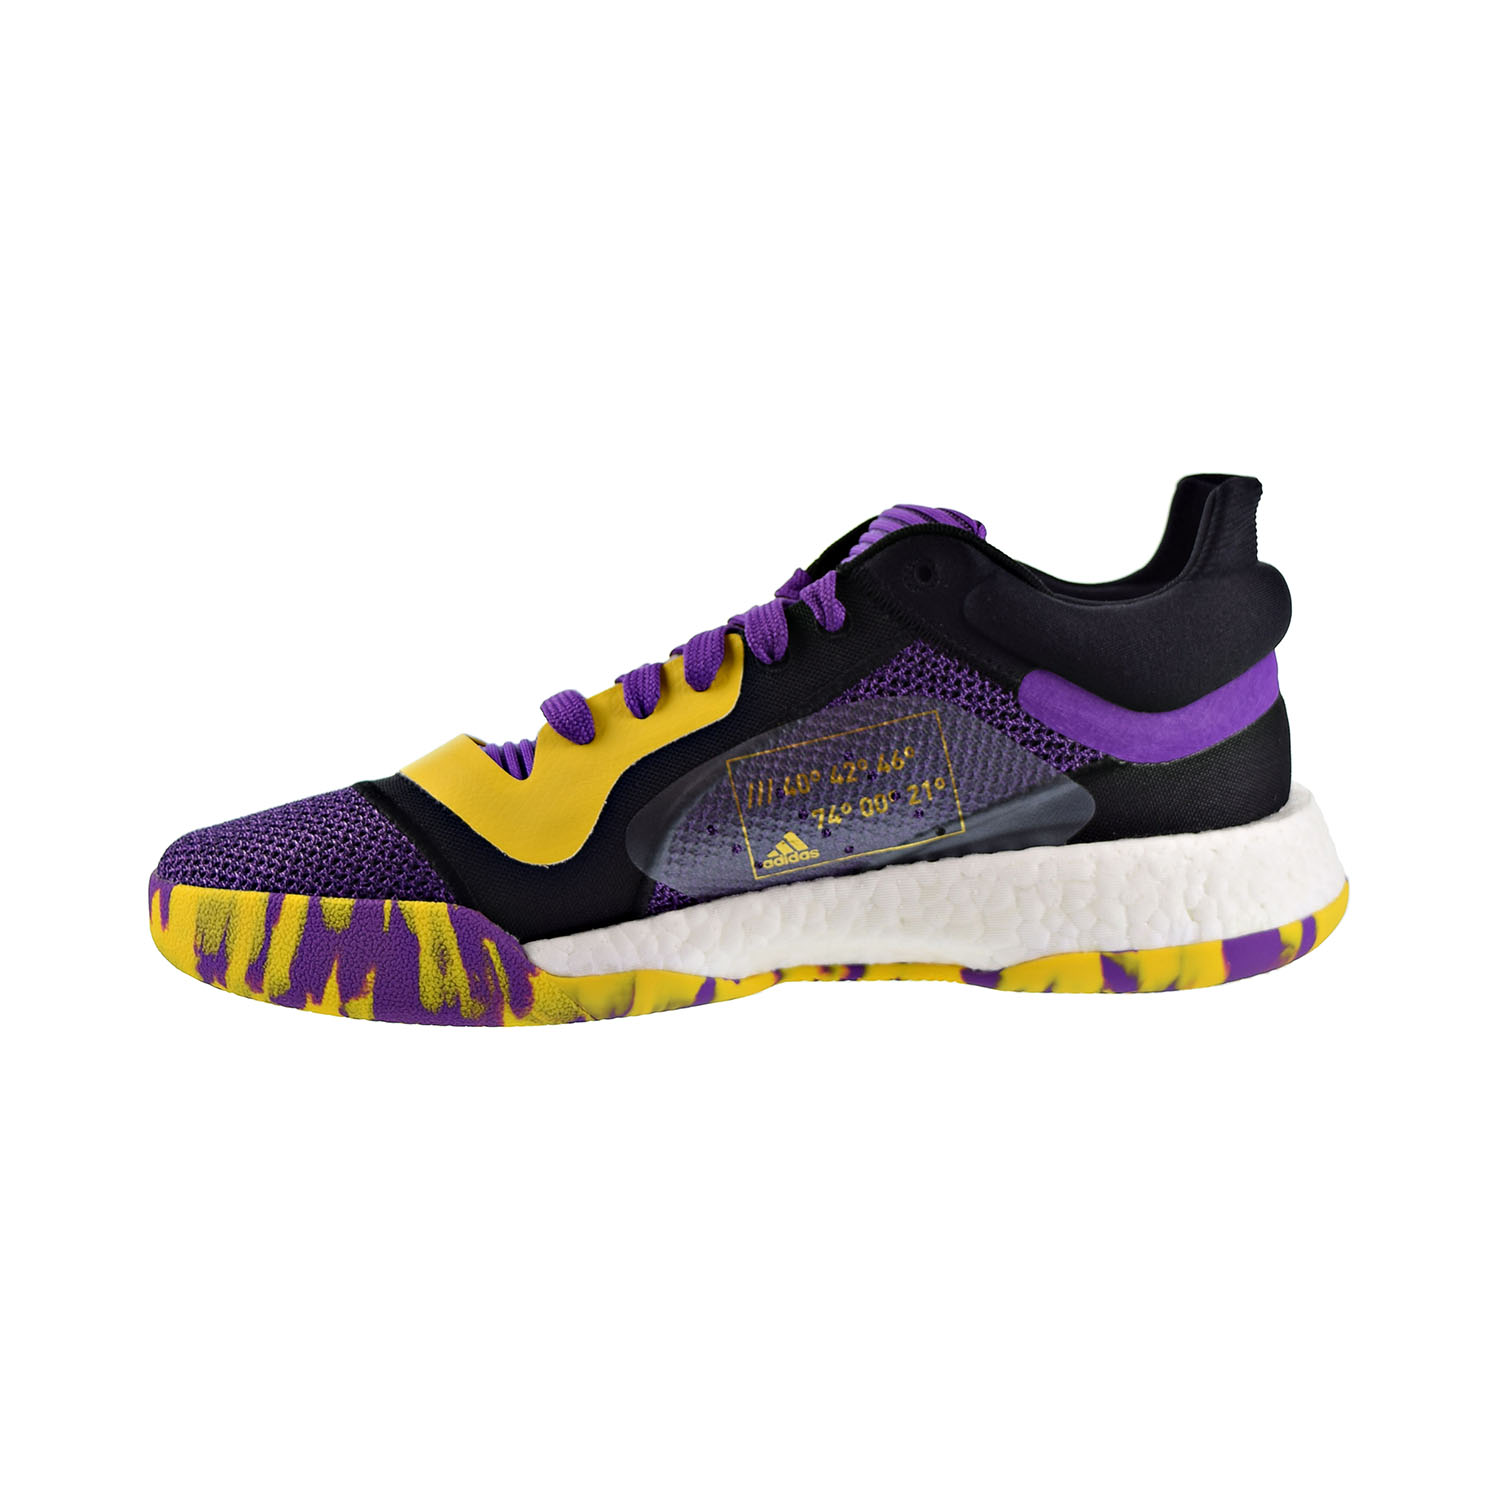 Dalset Reunir Contabilidad  Adidas Marquee Boost Low Men's Shoes Active Purple-Bold Gold G27746 | eBay